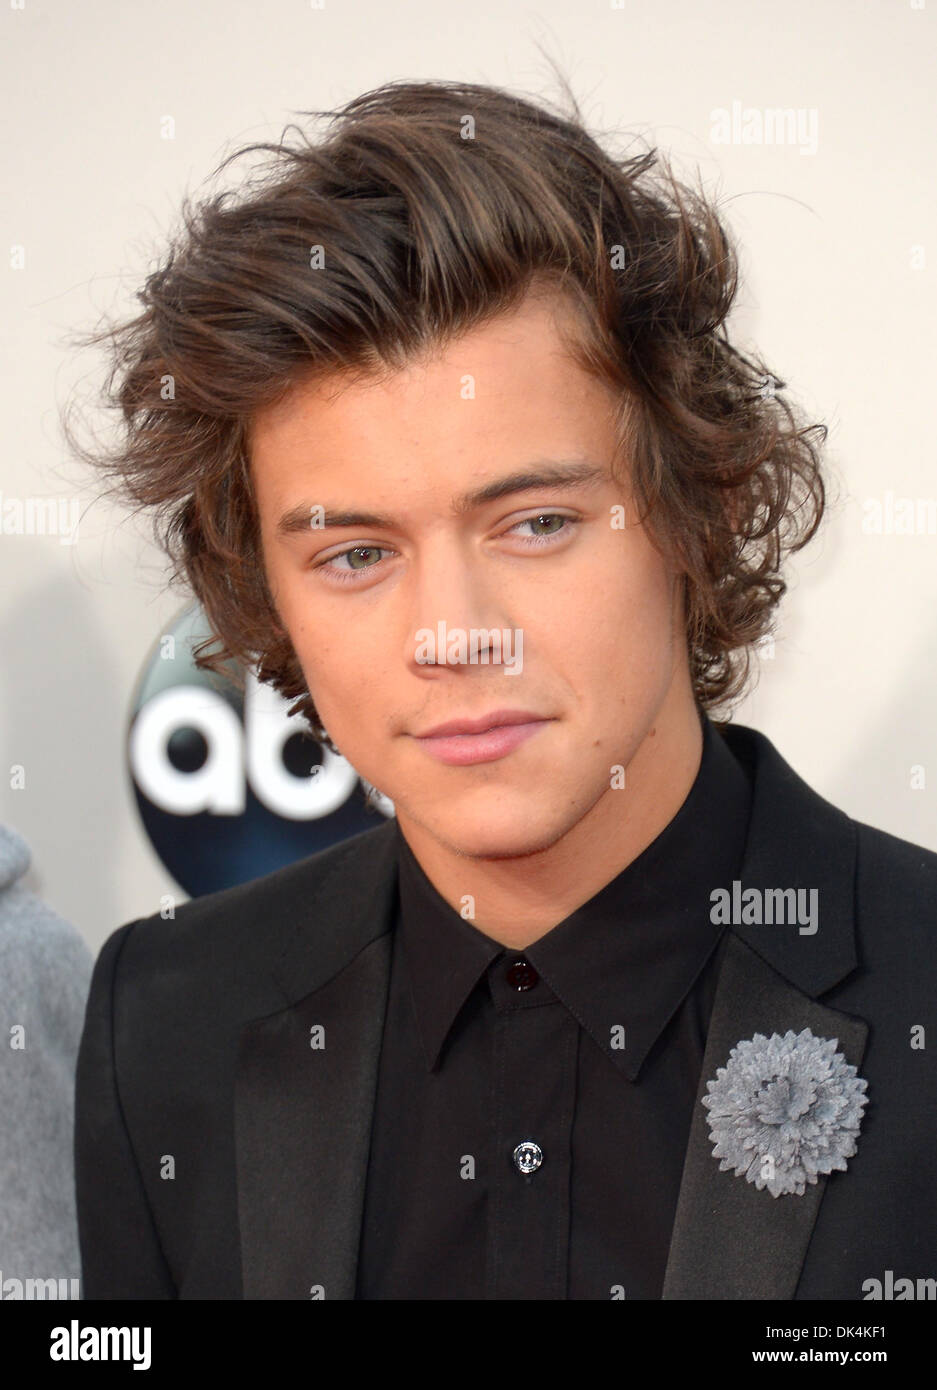 Harry Styles arrives at the American Music Awards, Los Angeles, America - 24 Nov 2013 - Stock Image